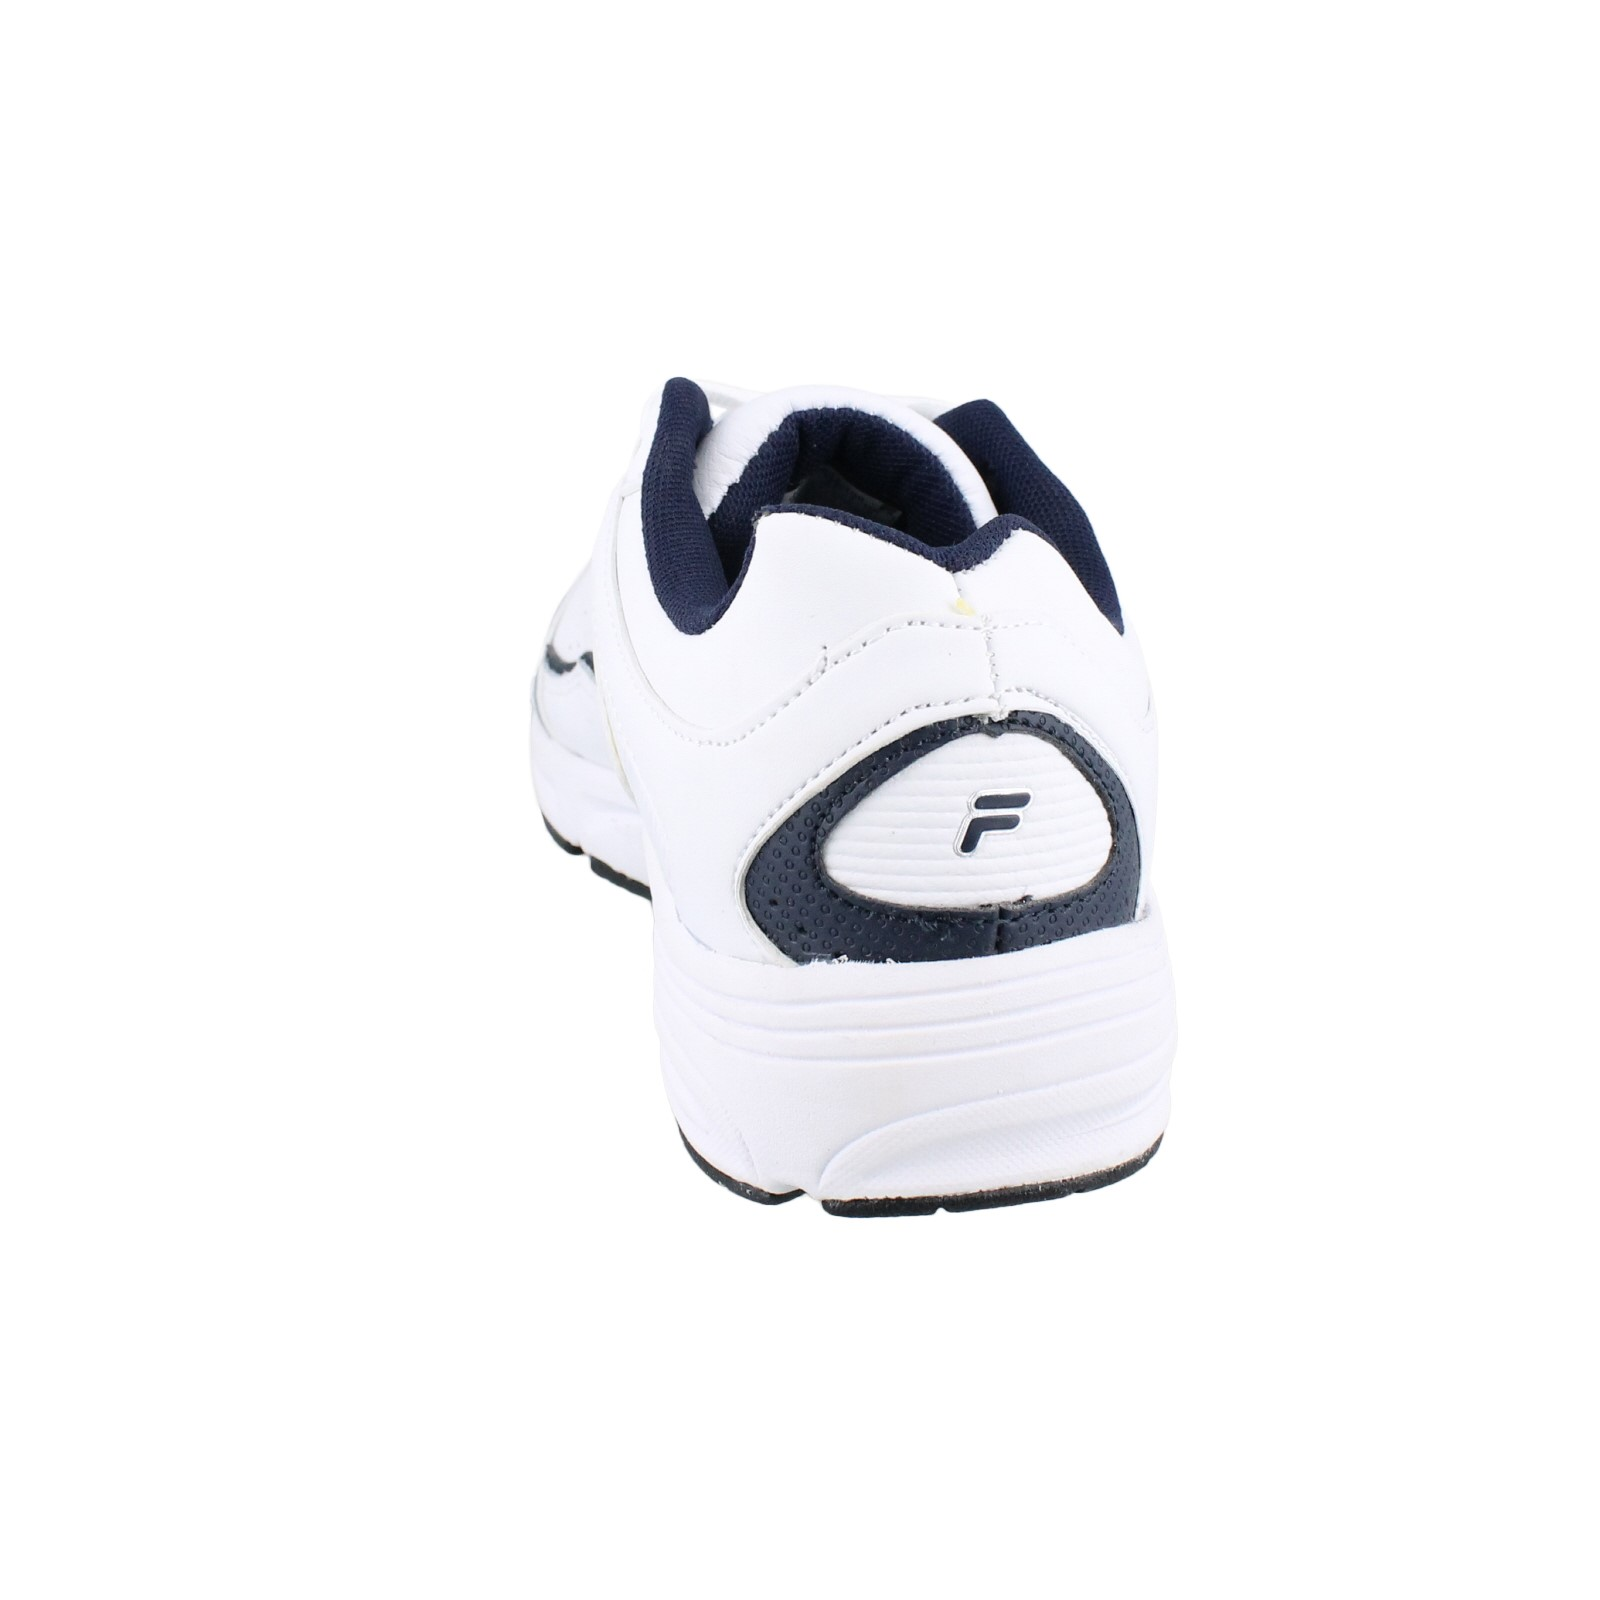 ee44dc632c2a Next. add to favorites. Men s Fila